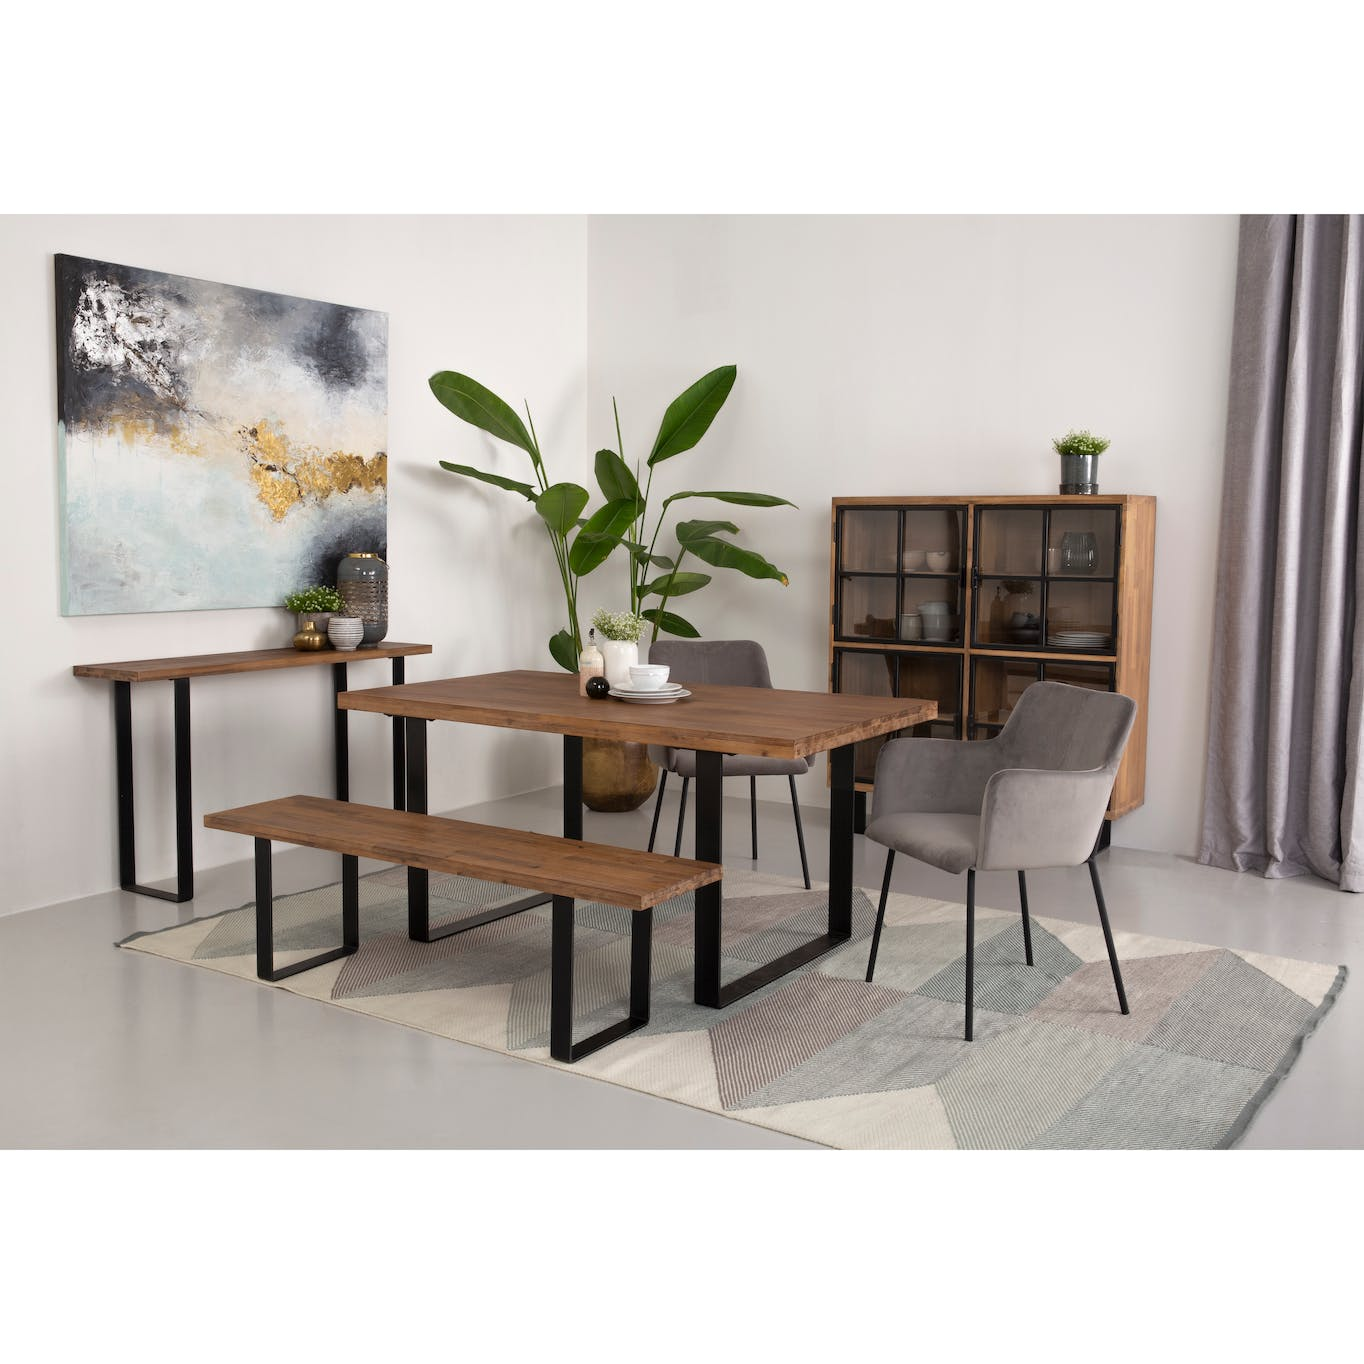 Dark wooden dining table with matching dining bench